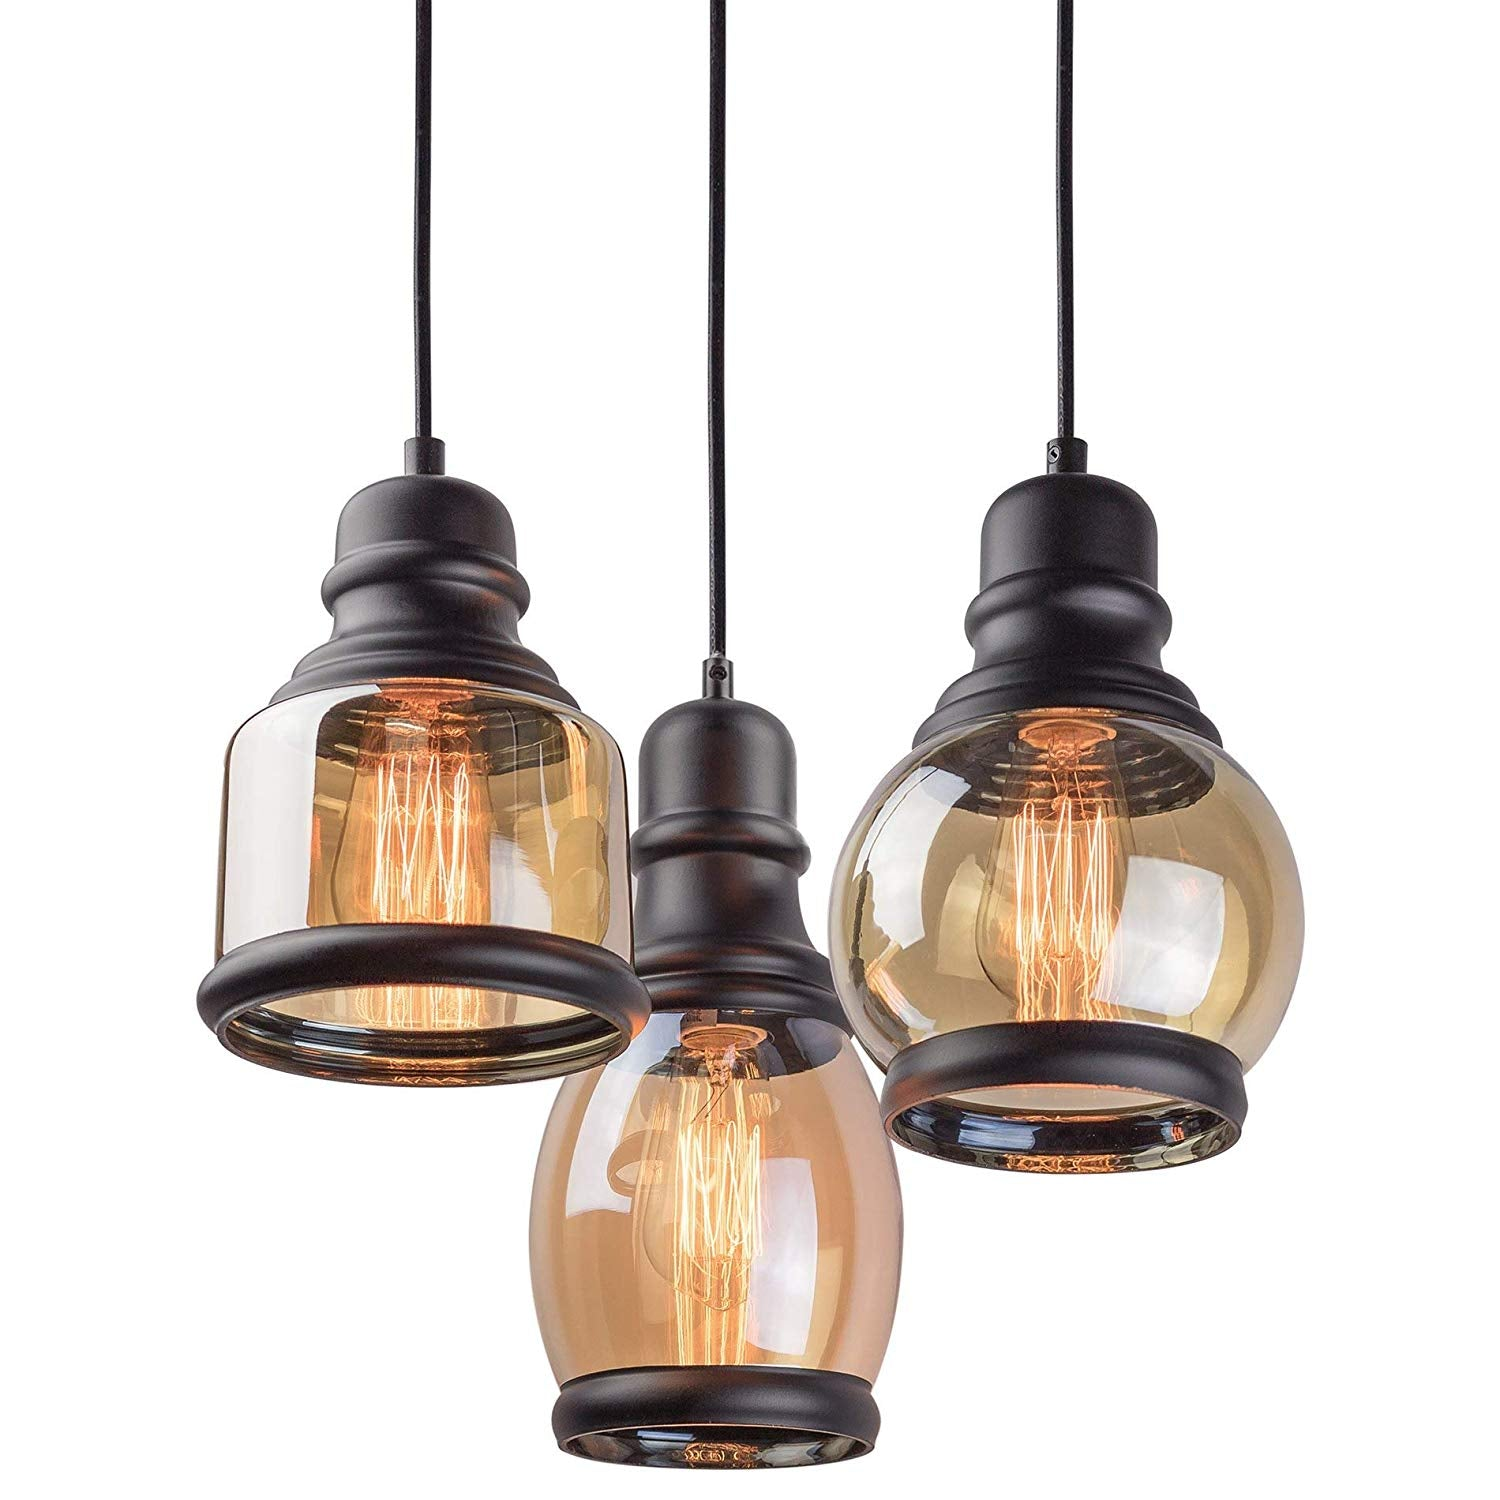 "Kira Home Hudson 11.5"" Vintage 3-Light Multi-Pendant Chandelier, Antique Jar Shades with Tinted Glass, Adjustable Corded Pendant, Matte Black Finish"